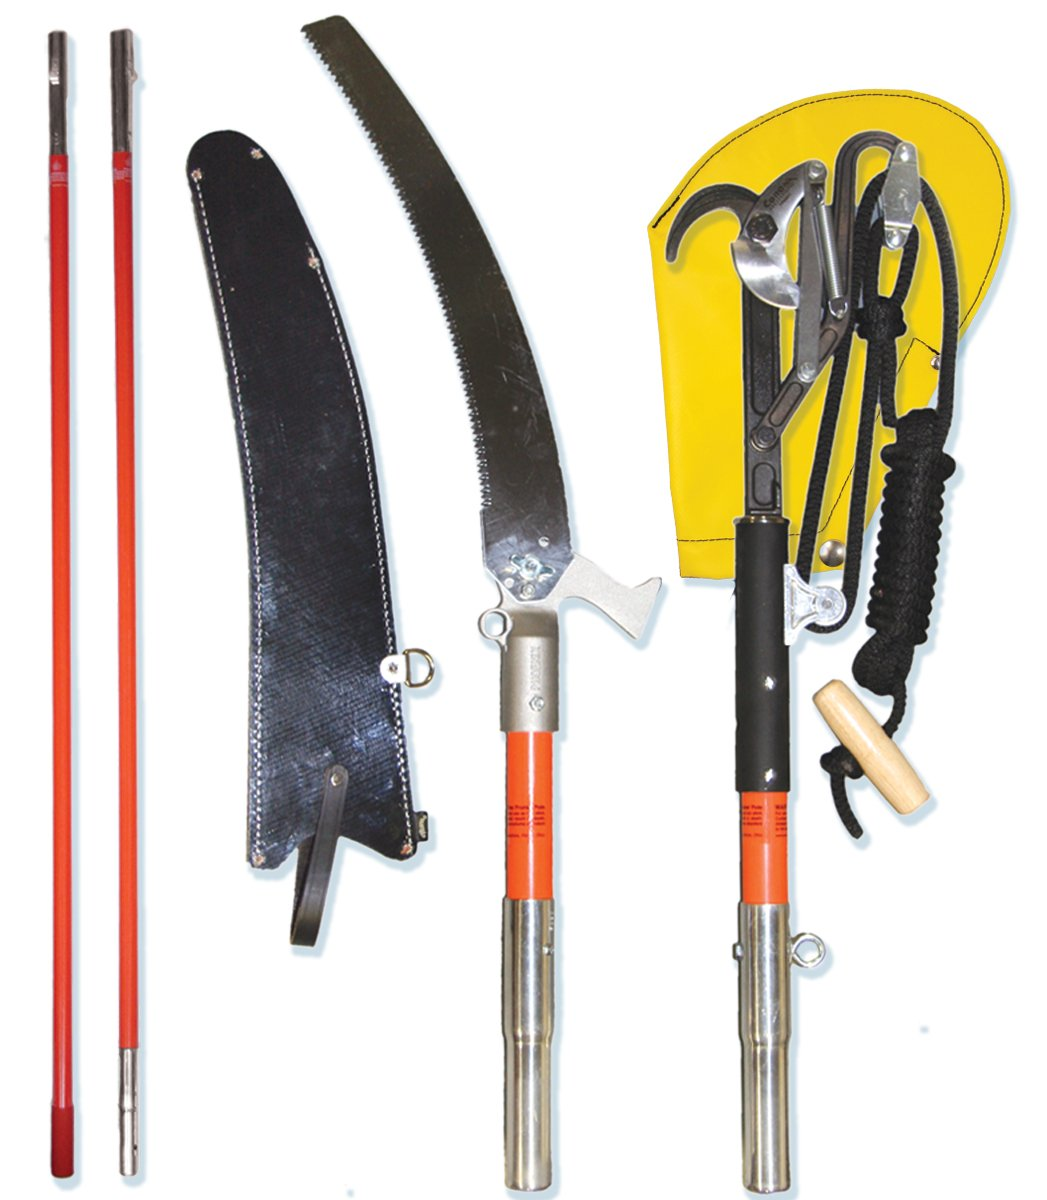 Ultimate Works Pole Saw and Pruner Kit